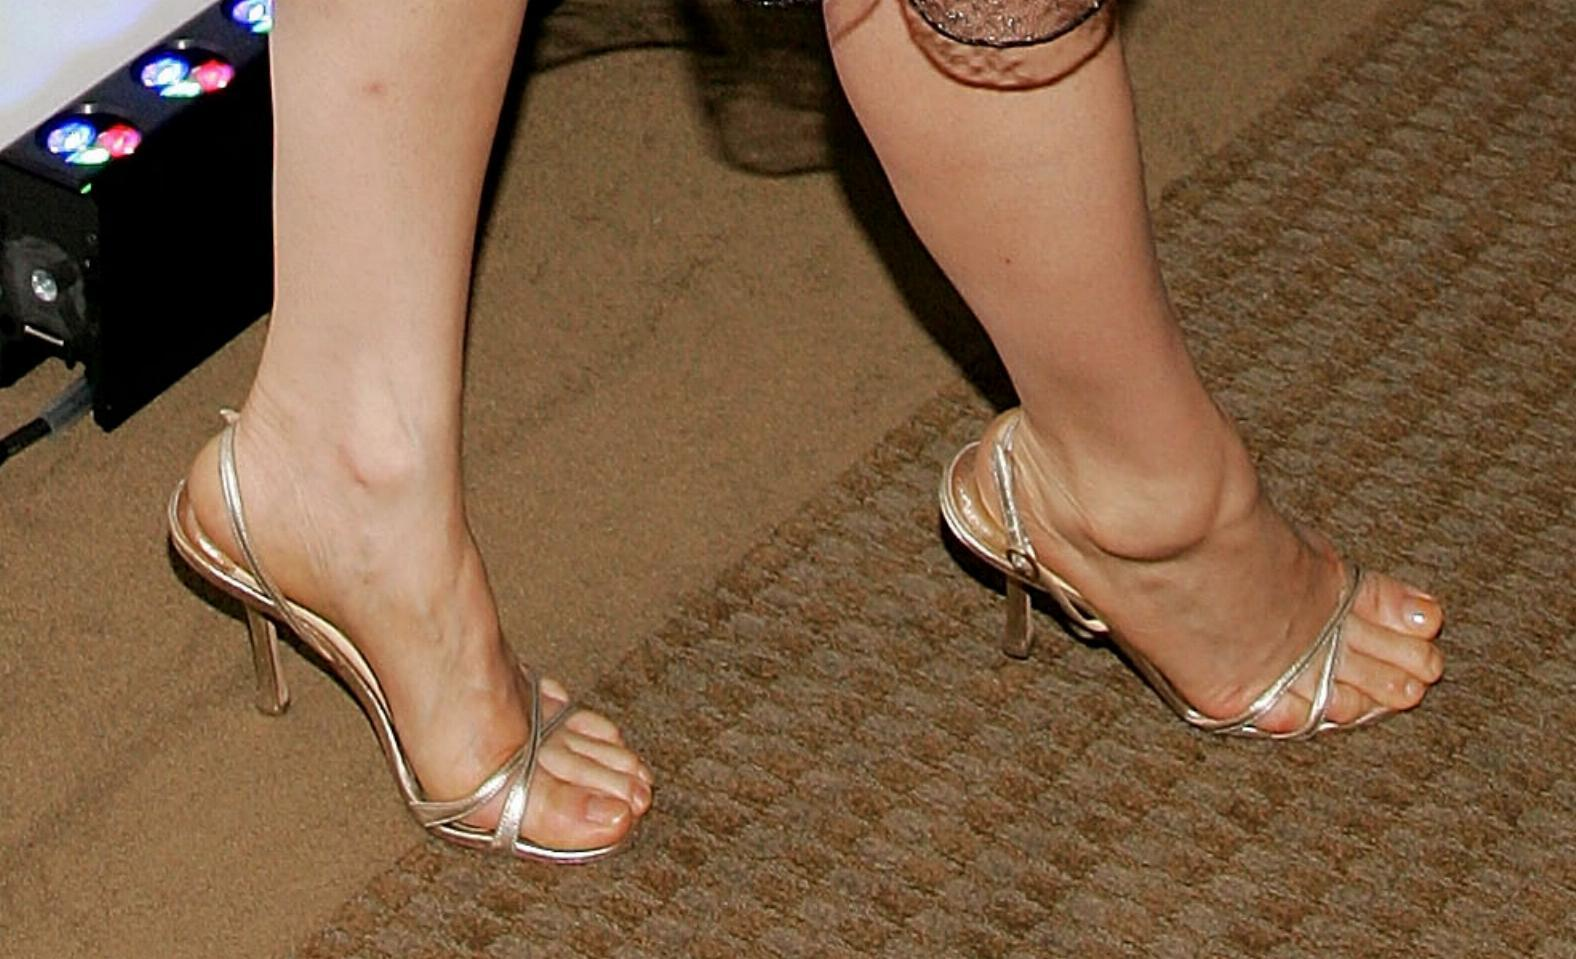 Feet Pictures 111